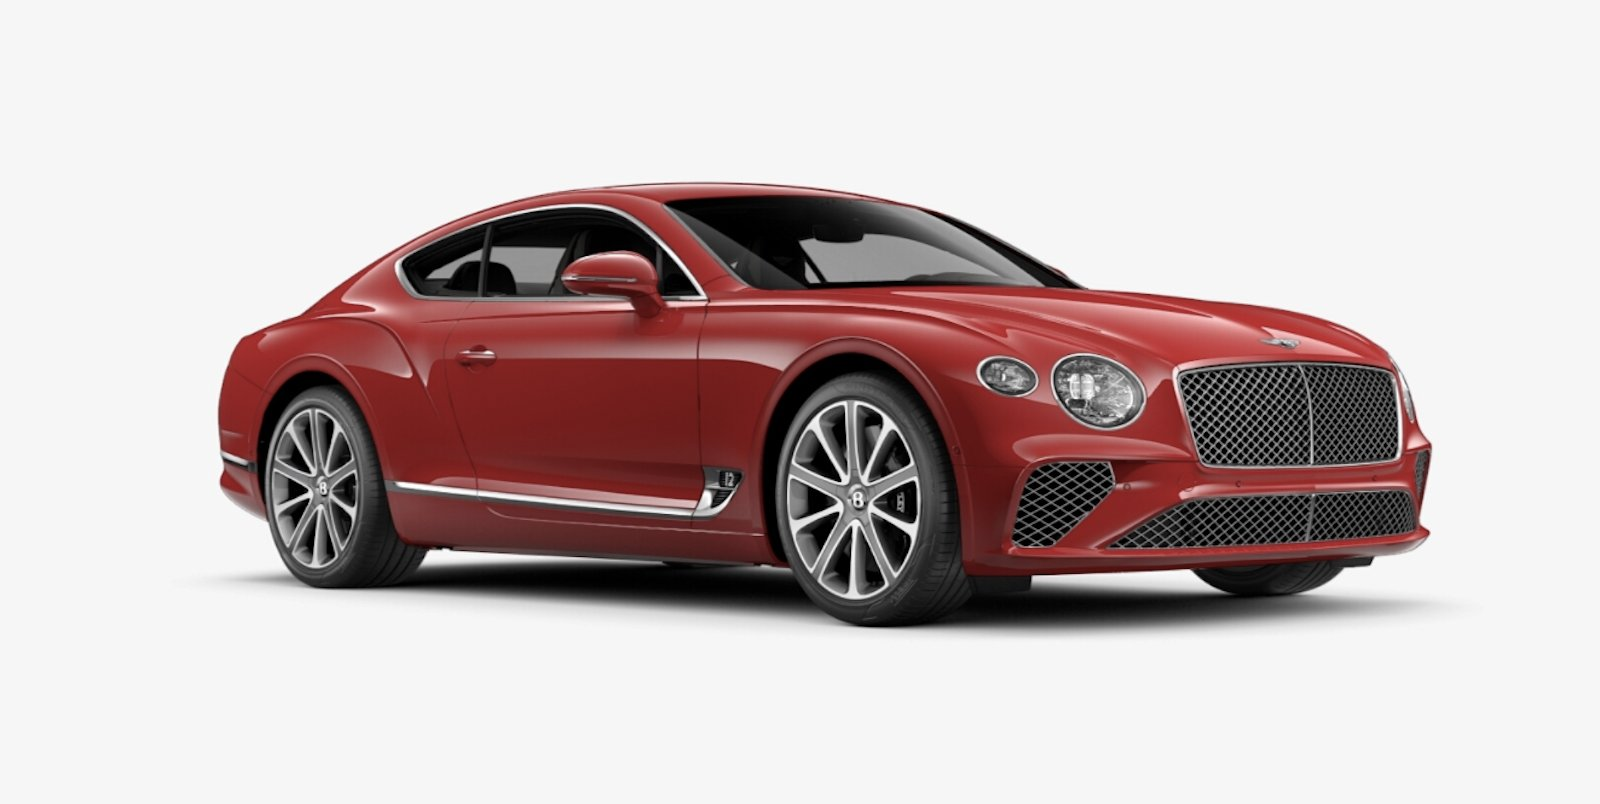 Bentley Configurator Allows You to Build Your Own 2018 ...